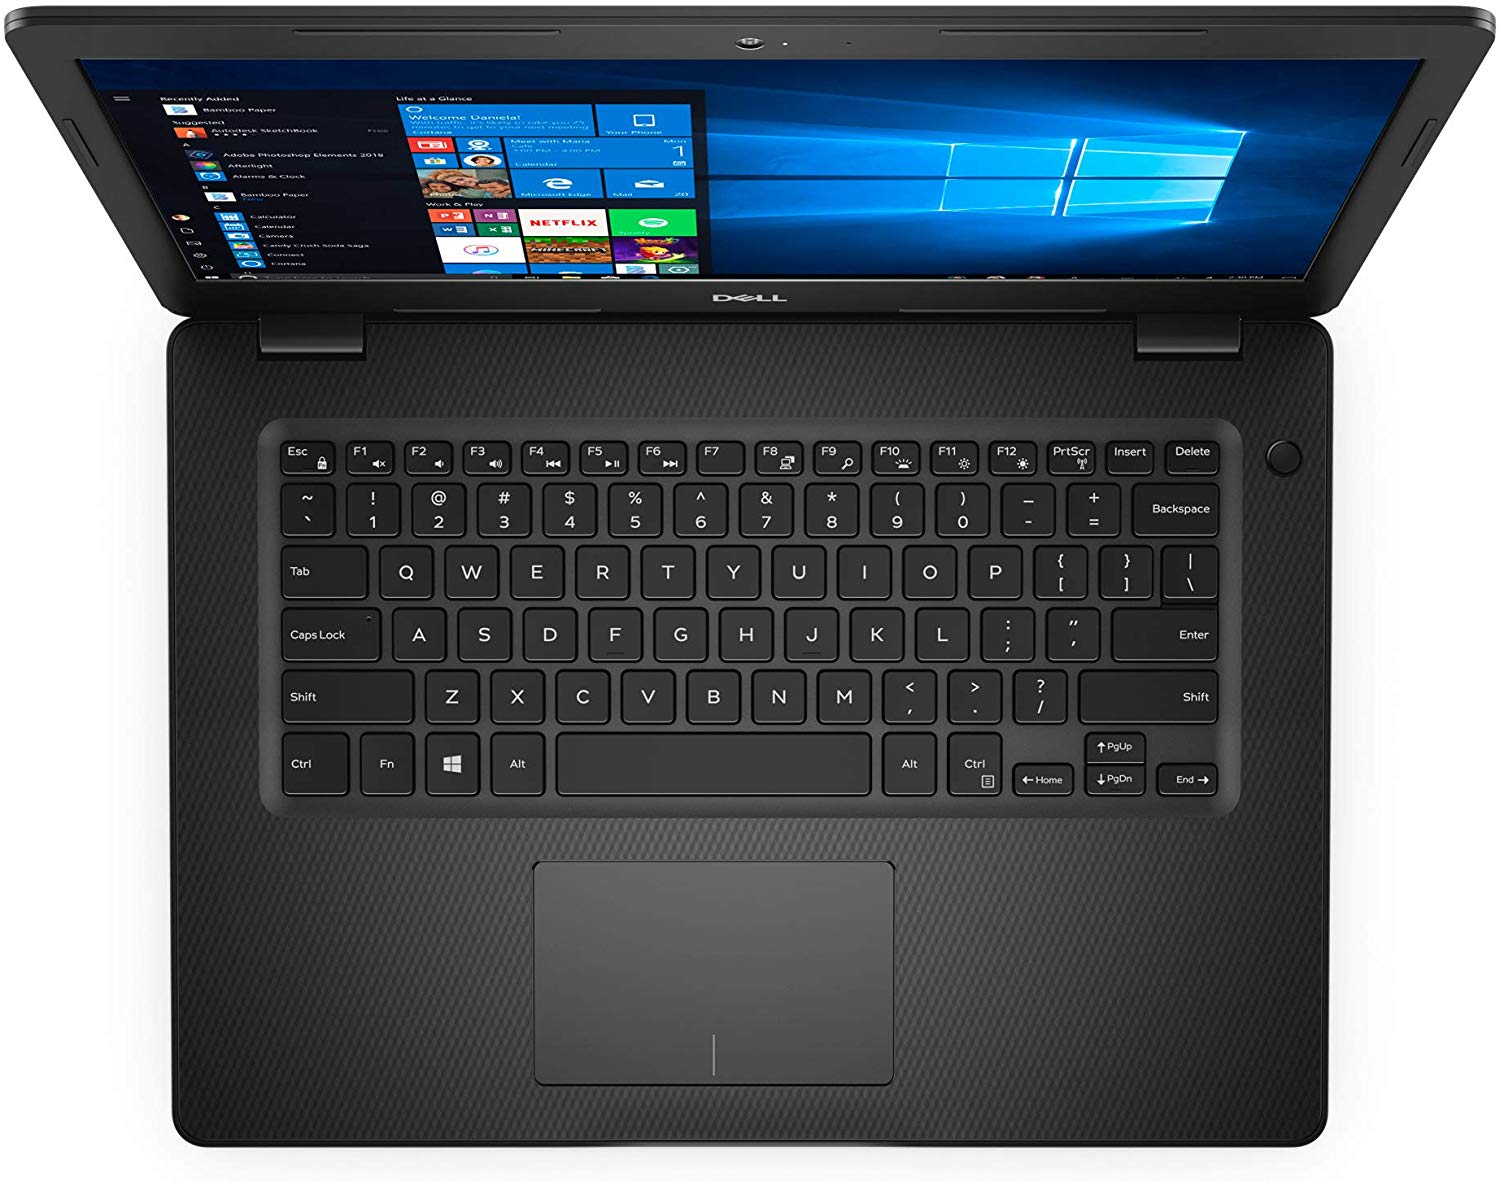 2020 Dell Inspiron 3000 14 inch Laptop, i5-1035G4